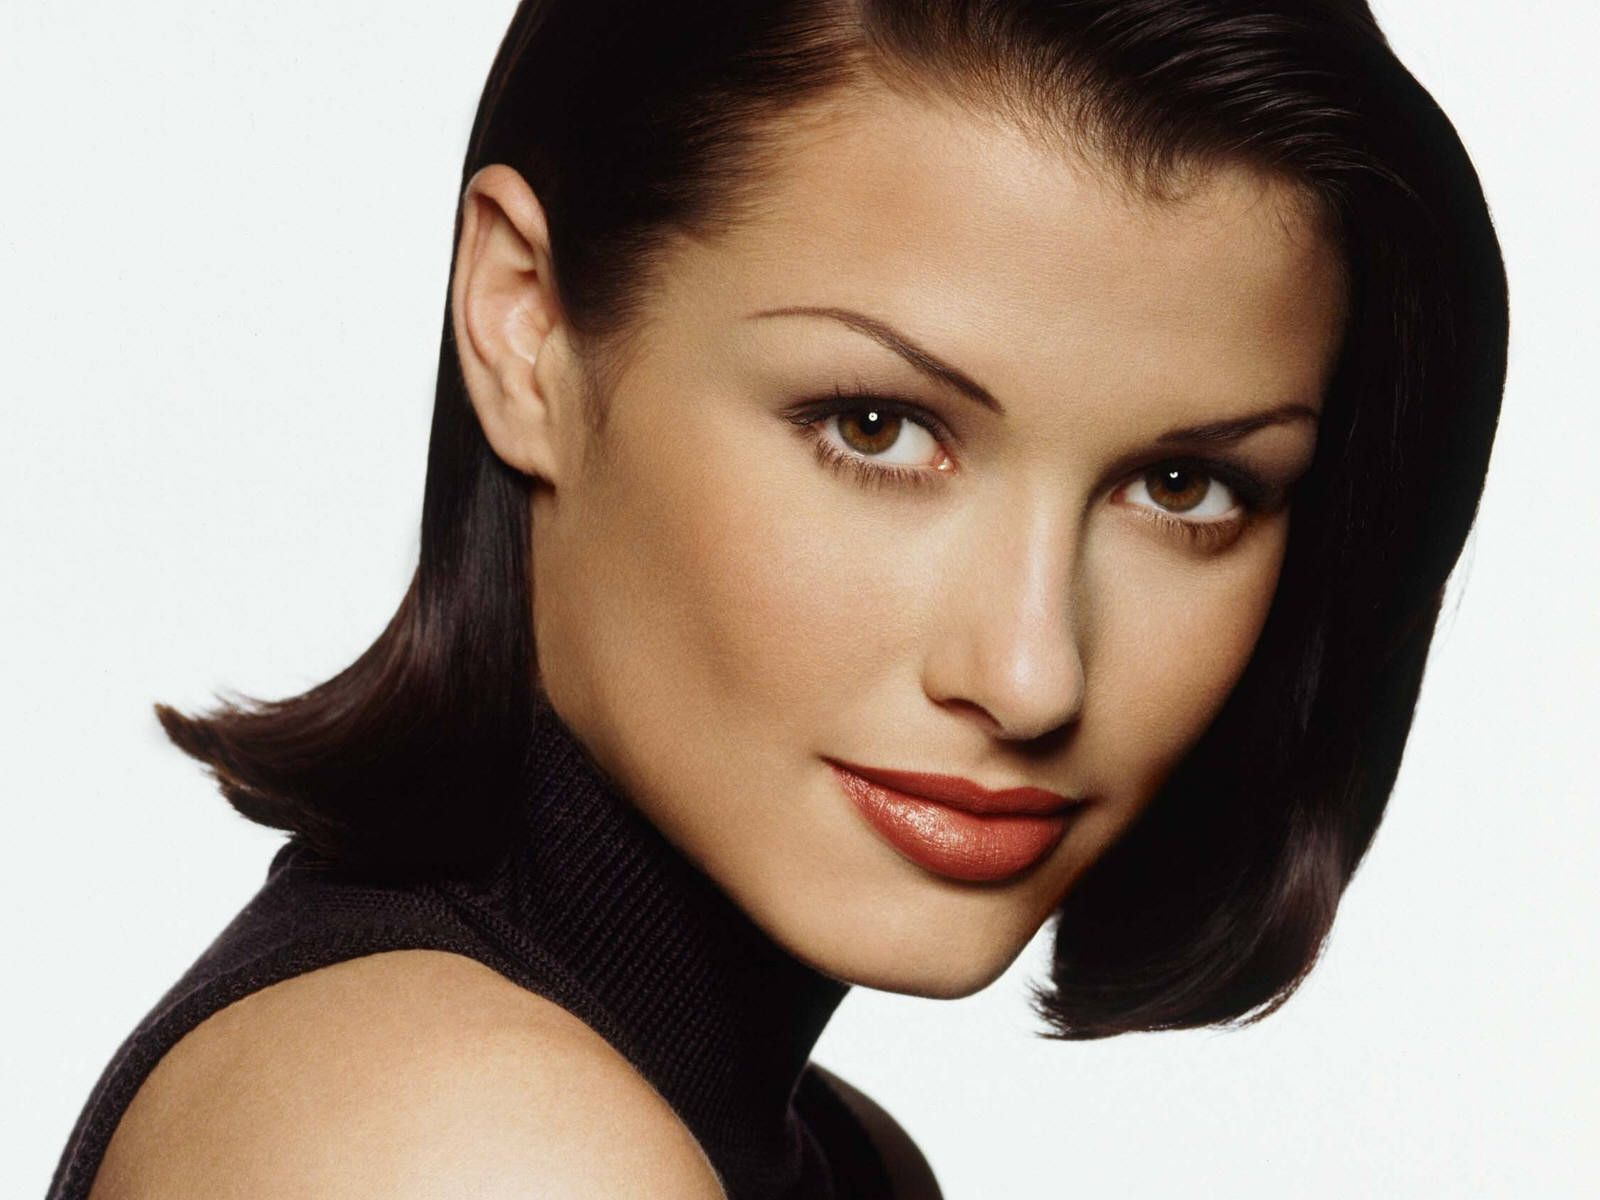 Bridget Moynahan Bridget Moynahan Hot Bridget Moynahan Female wallpaper